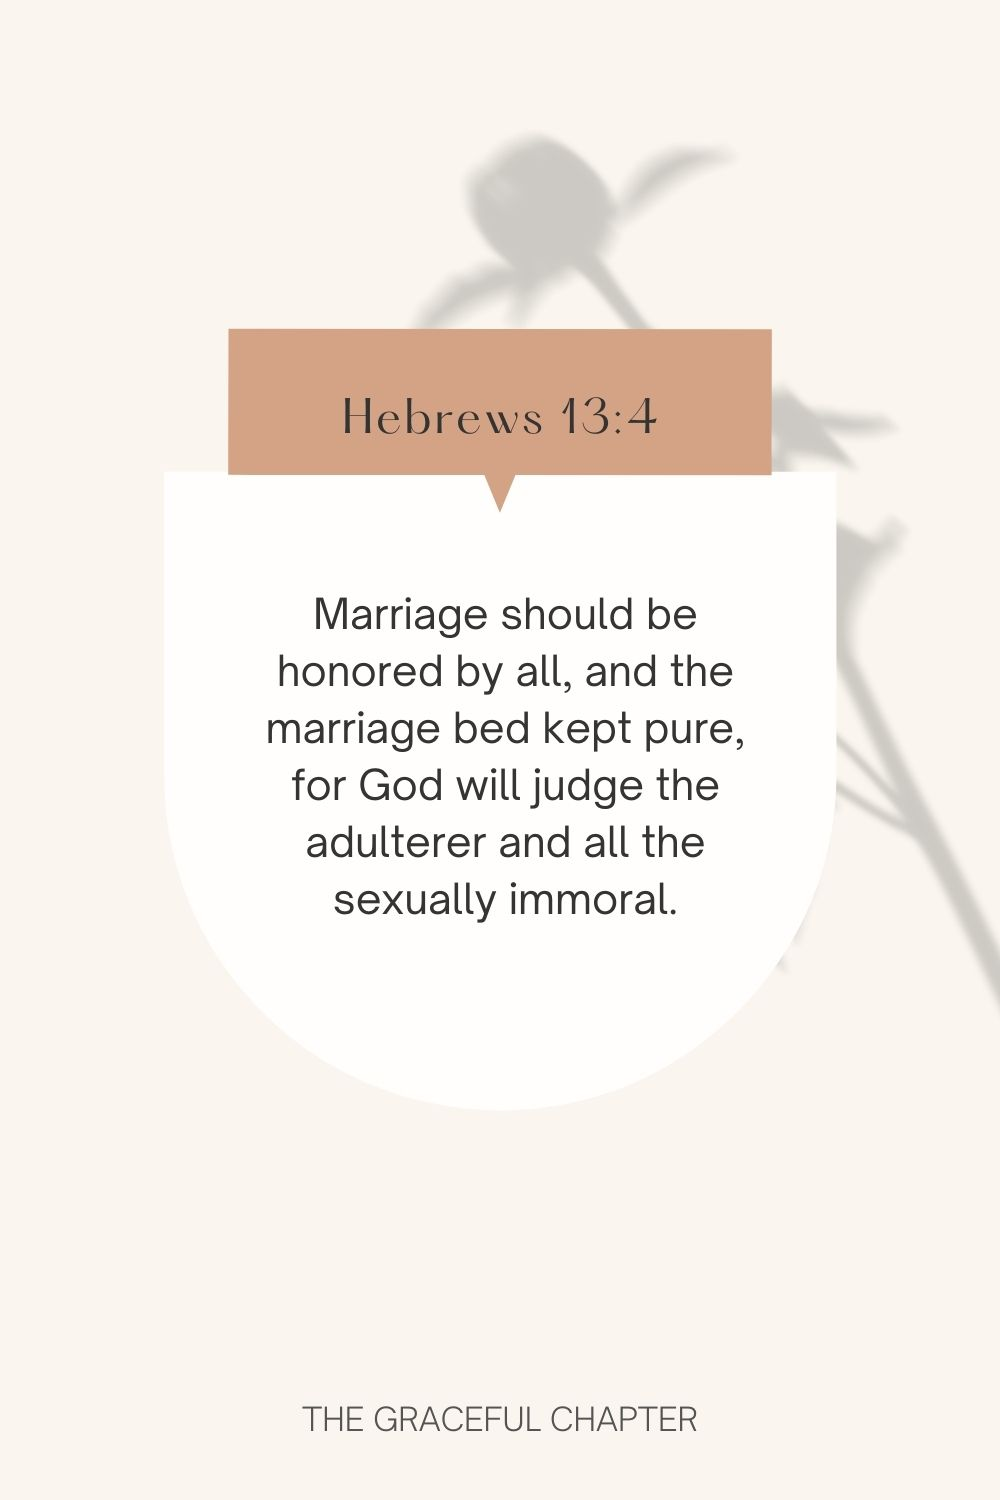 Marriage should be honored by all, and the marriage bed kept pure, for God will judge the adulterer and all the sexually immoral. Hebrews 13:4